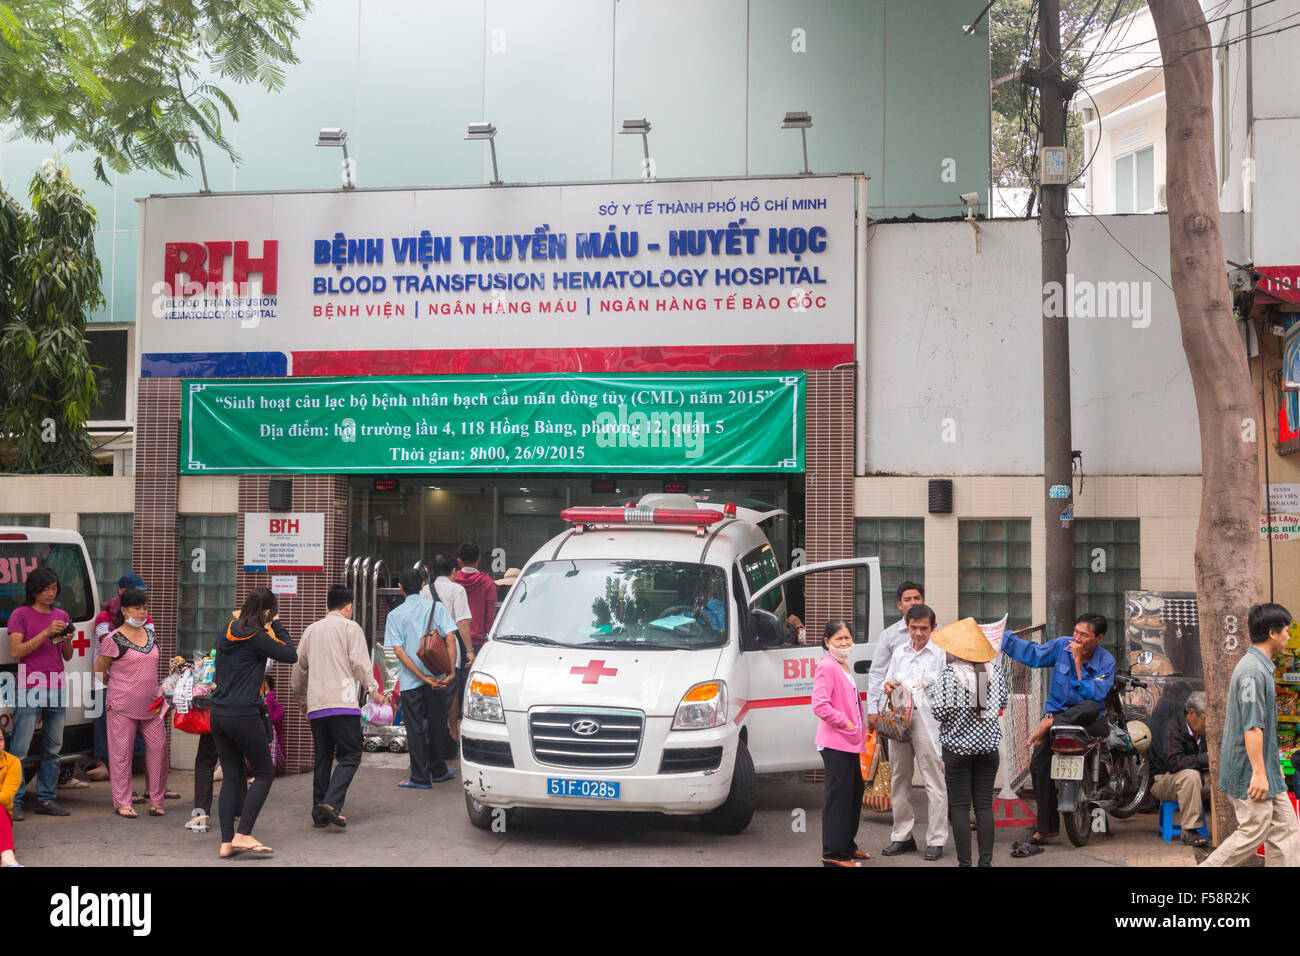 Blood transfusion hematology hospital in Ho Chi Minh city